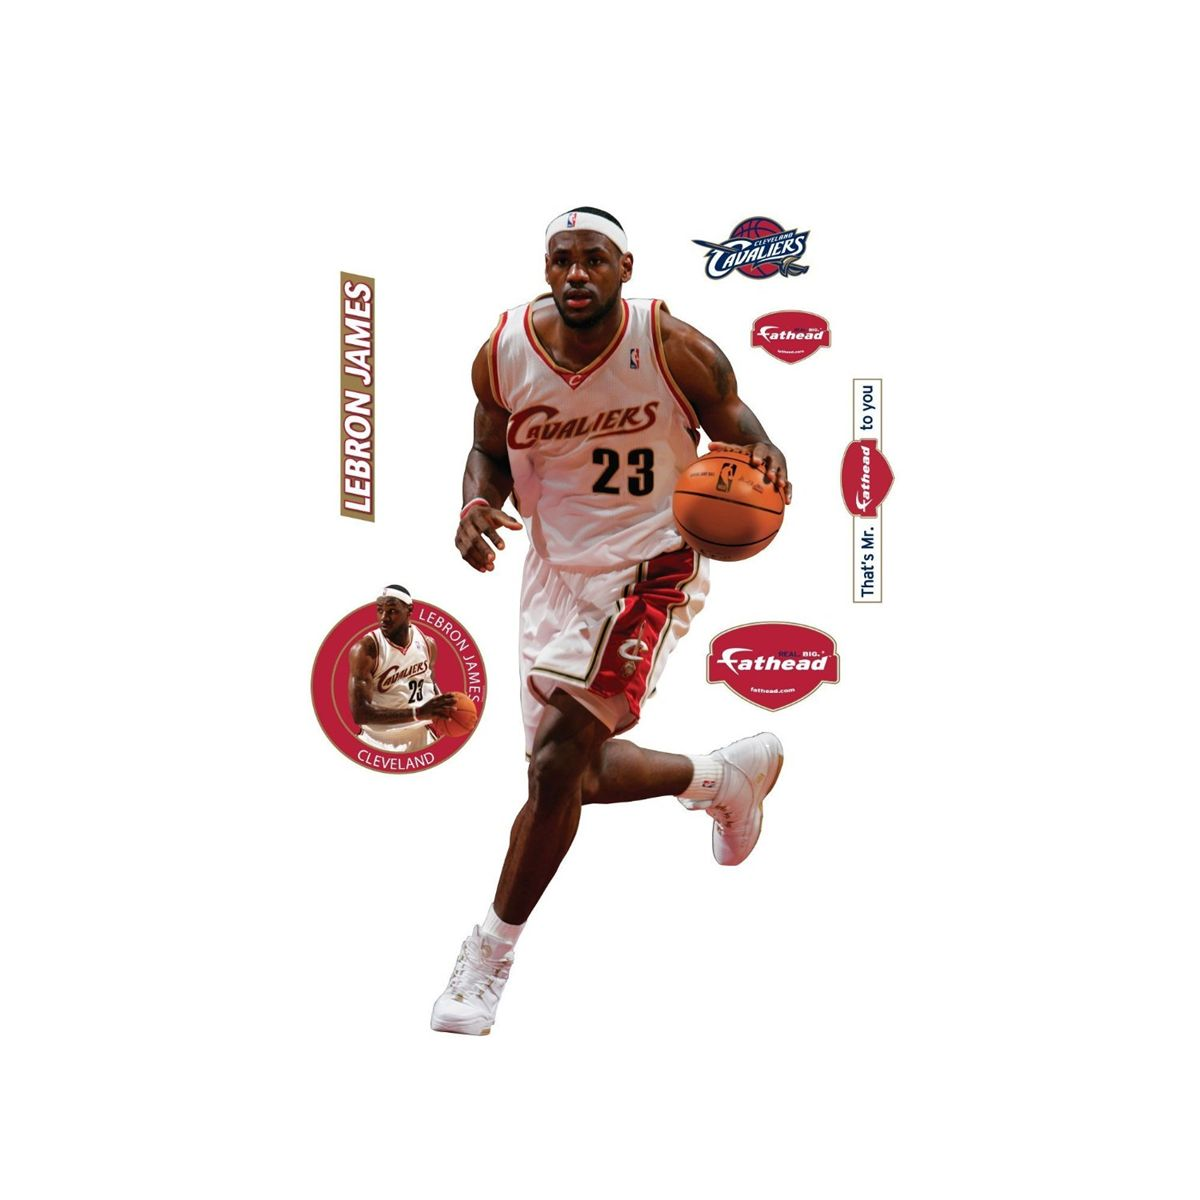 d27b1534ba7b LEBRON JAMES Cleveland Cavaliers FATHEAD Unused MINT. Loading zoom